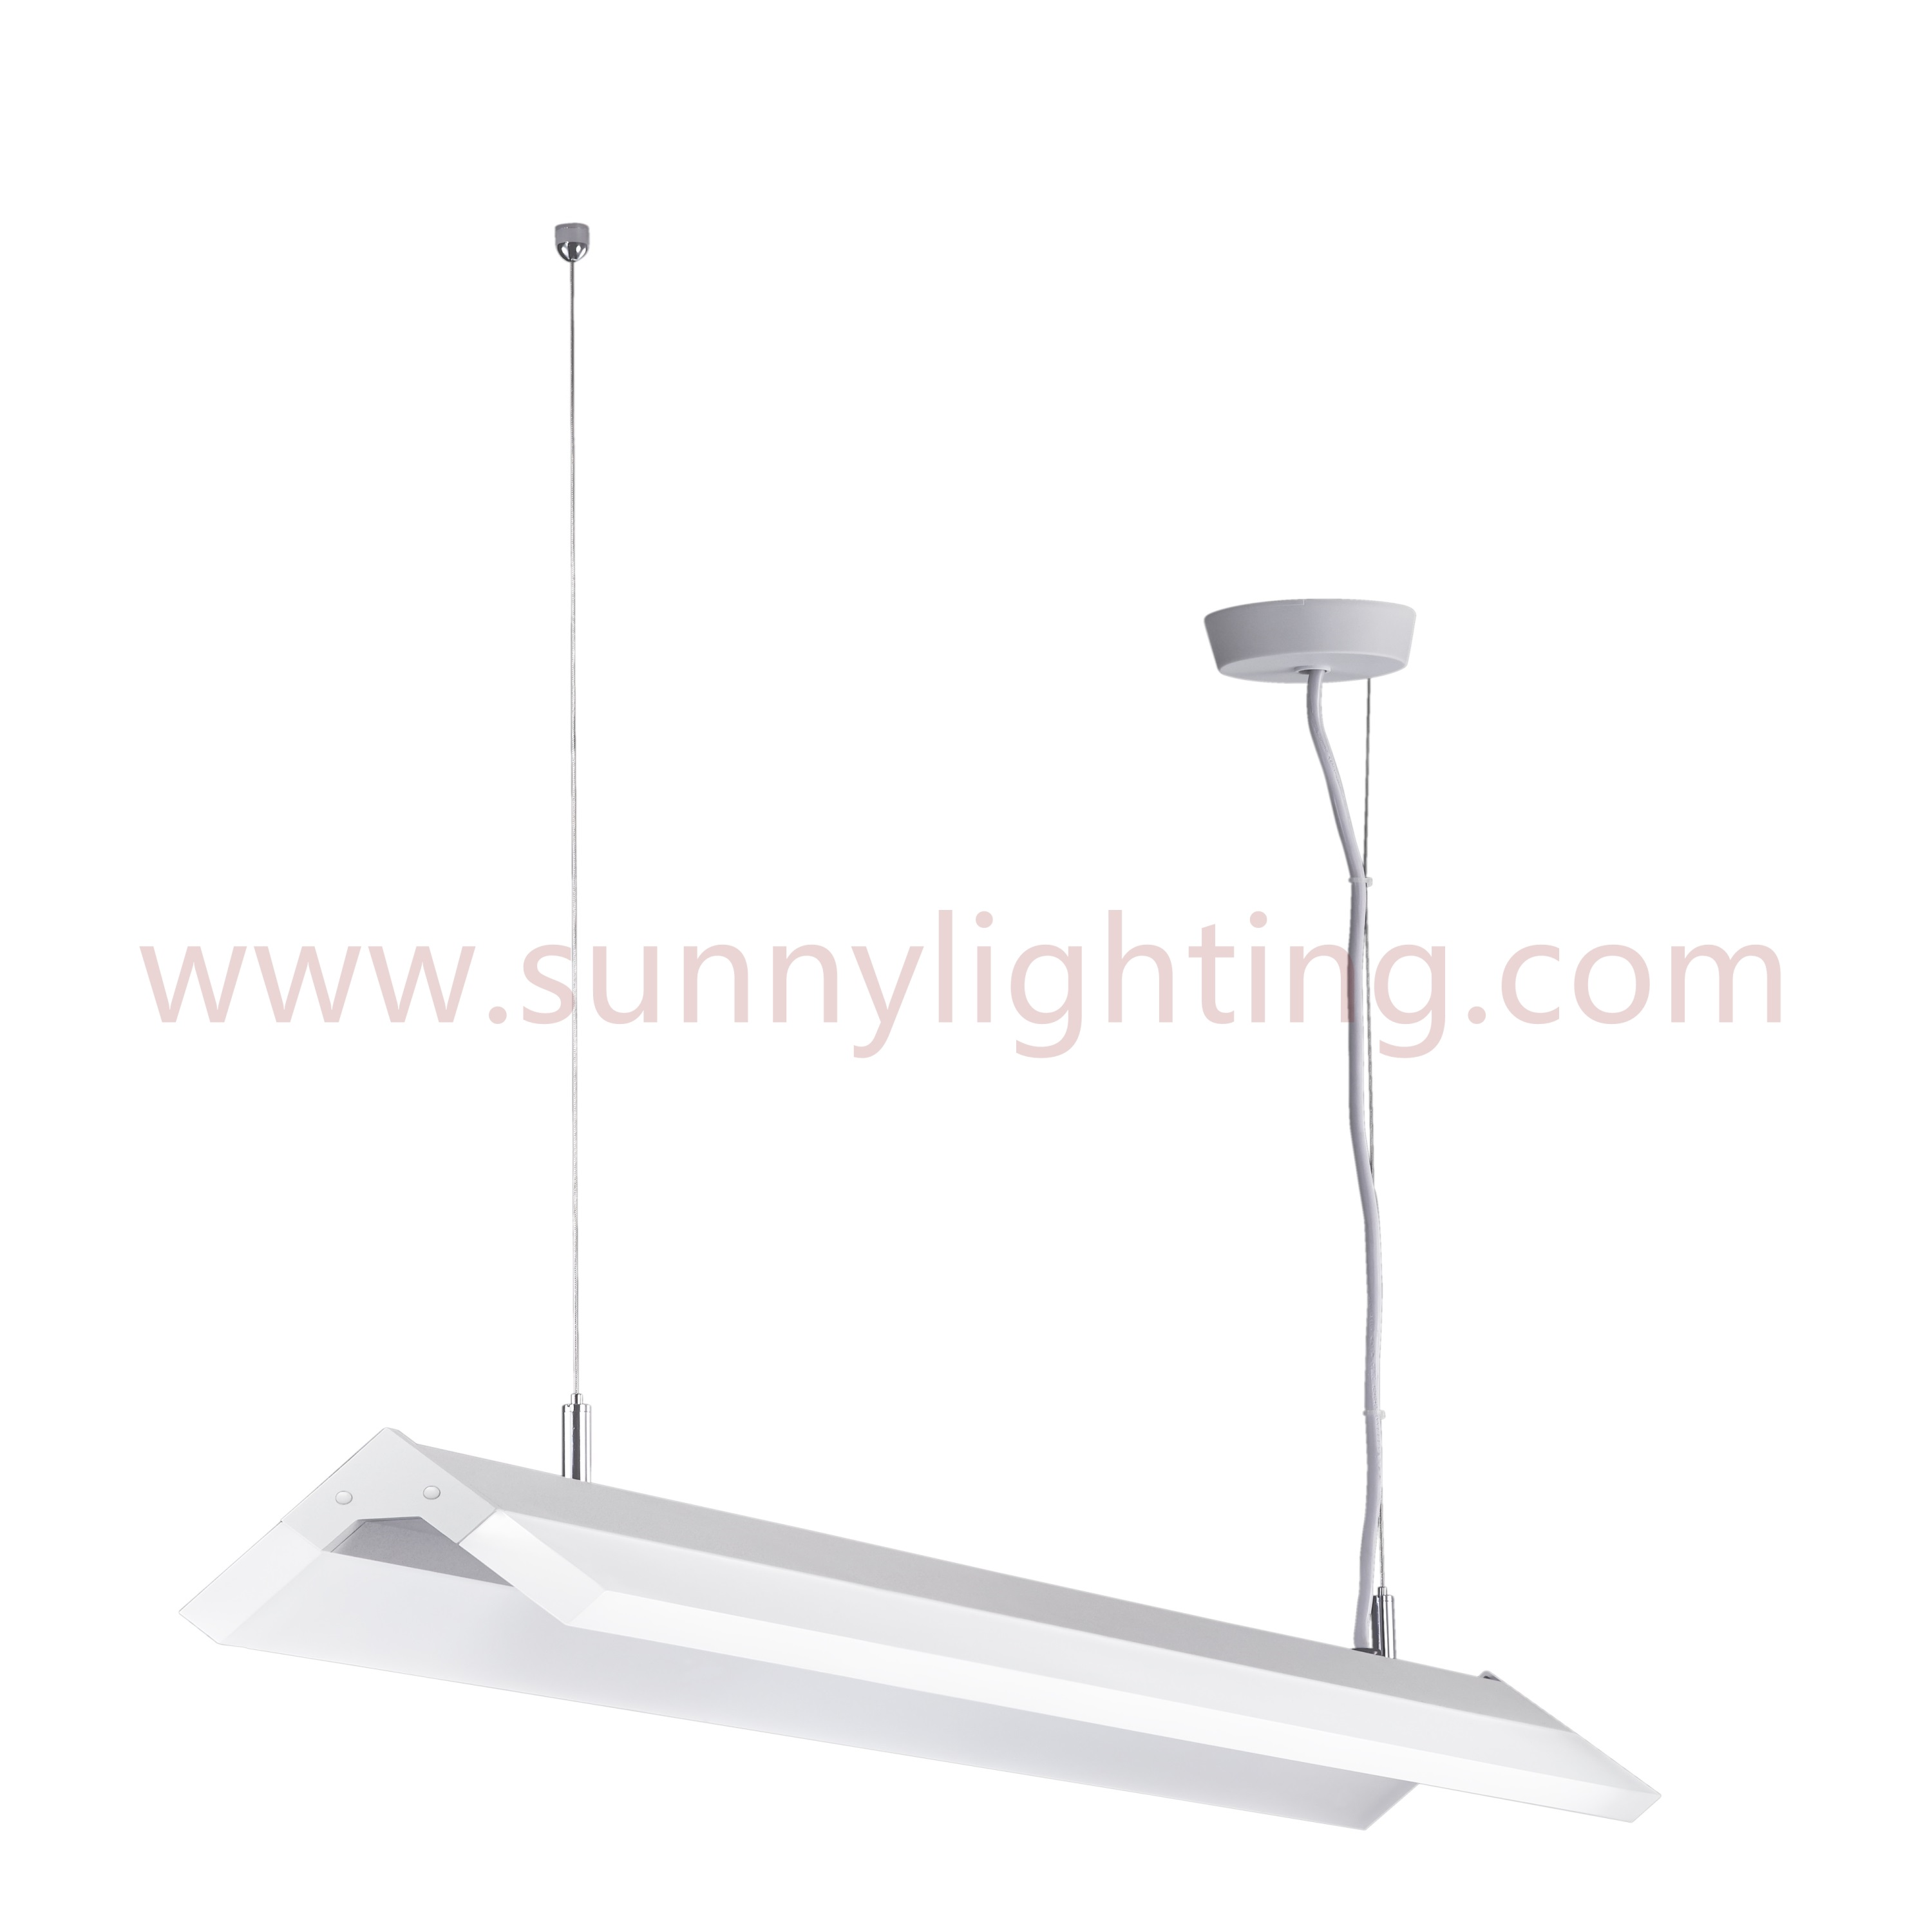 LED Linear Light 21.6/28.8W/36W LED-080